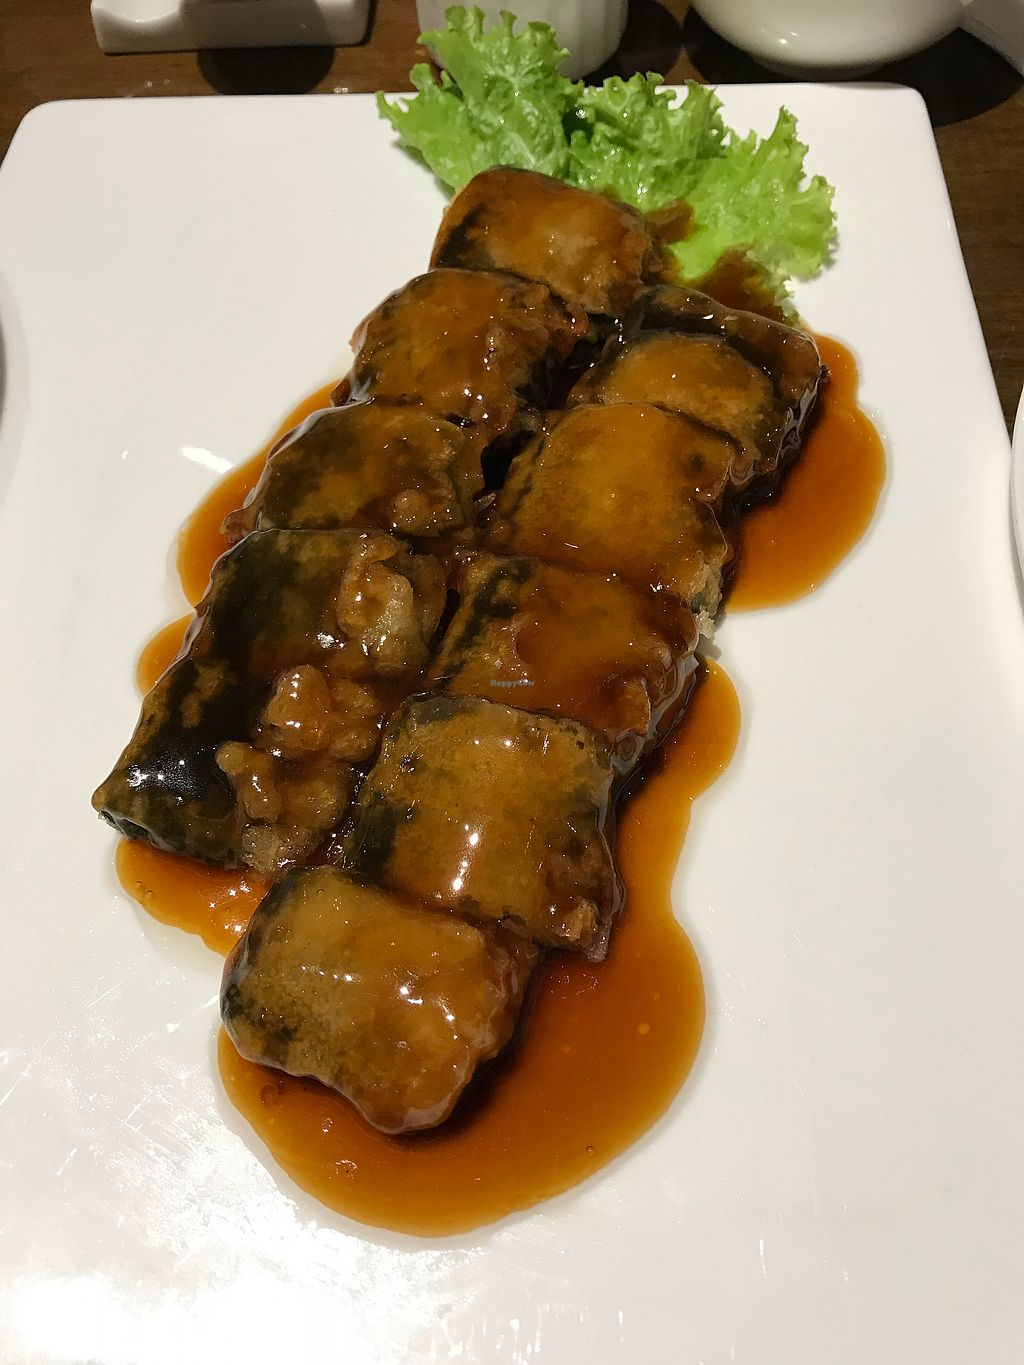 """Photo of Vegetarian Life Style - Zao Zi Shu - HuaiHai  by <a href=""""/members/profile/etylina"""">etylina</a> <br/>Slightly weird taste even though we generally like seaweed <br/> October 25, 2017  - <a href='/contact/abuse/image/14/318782'>Report</a>"""